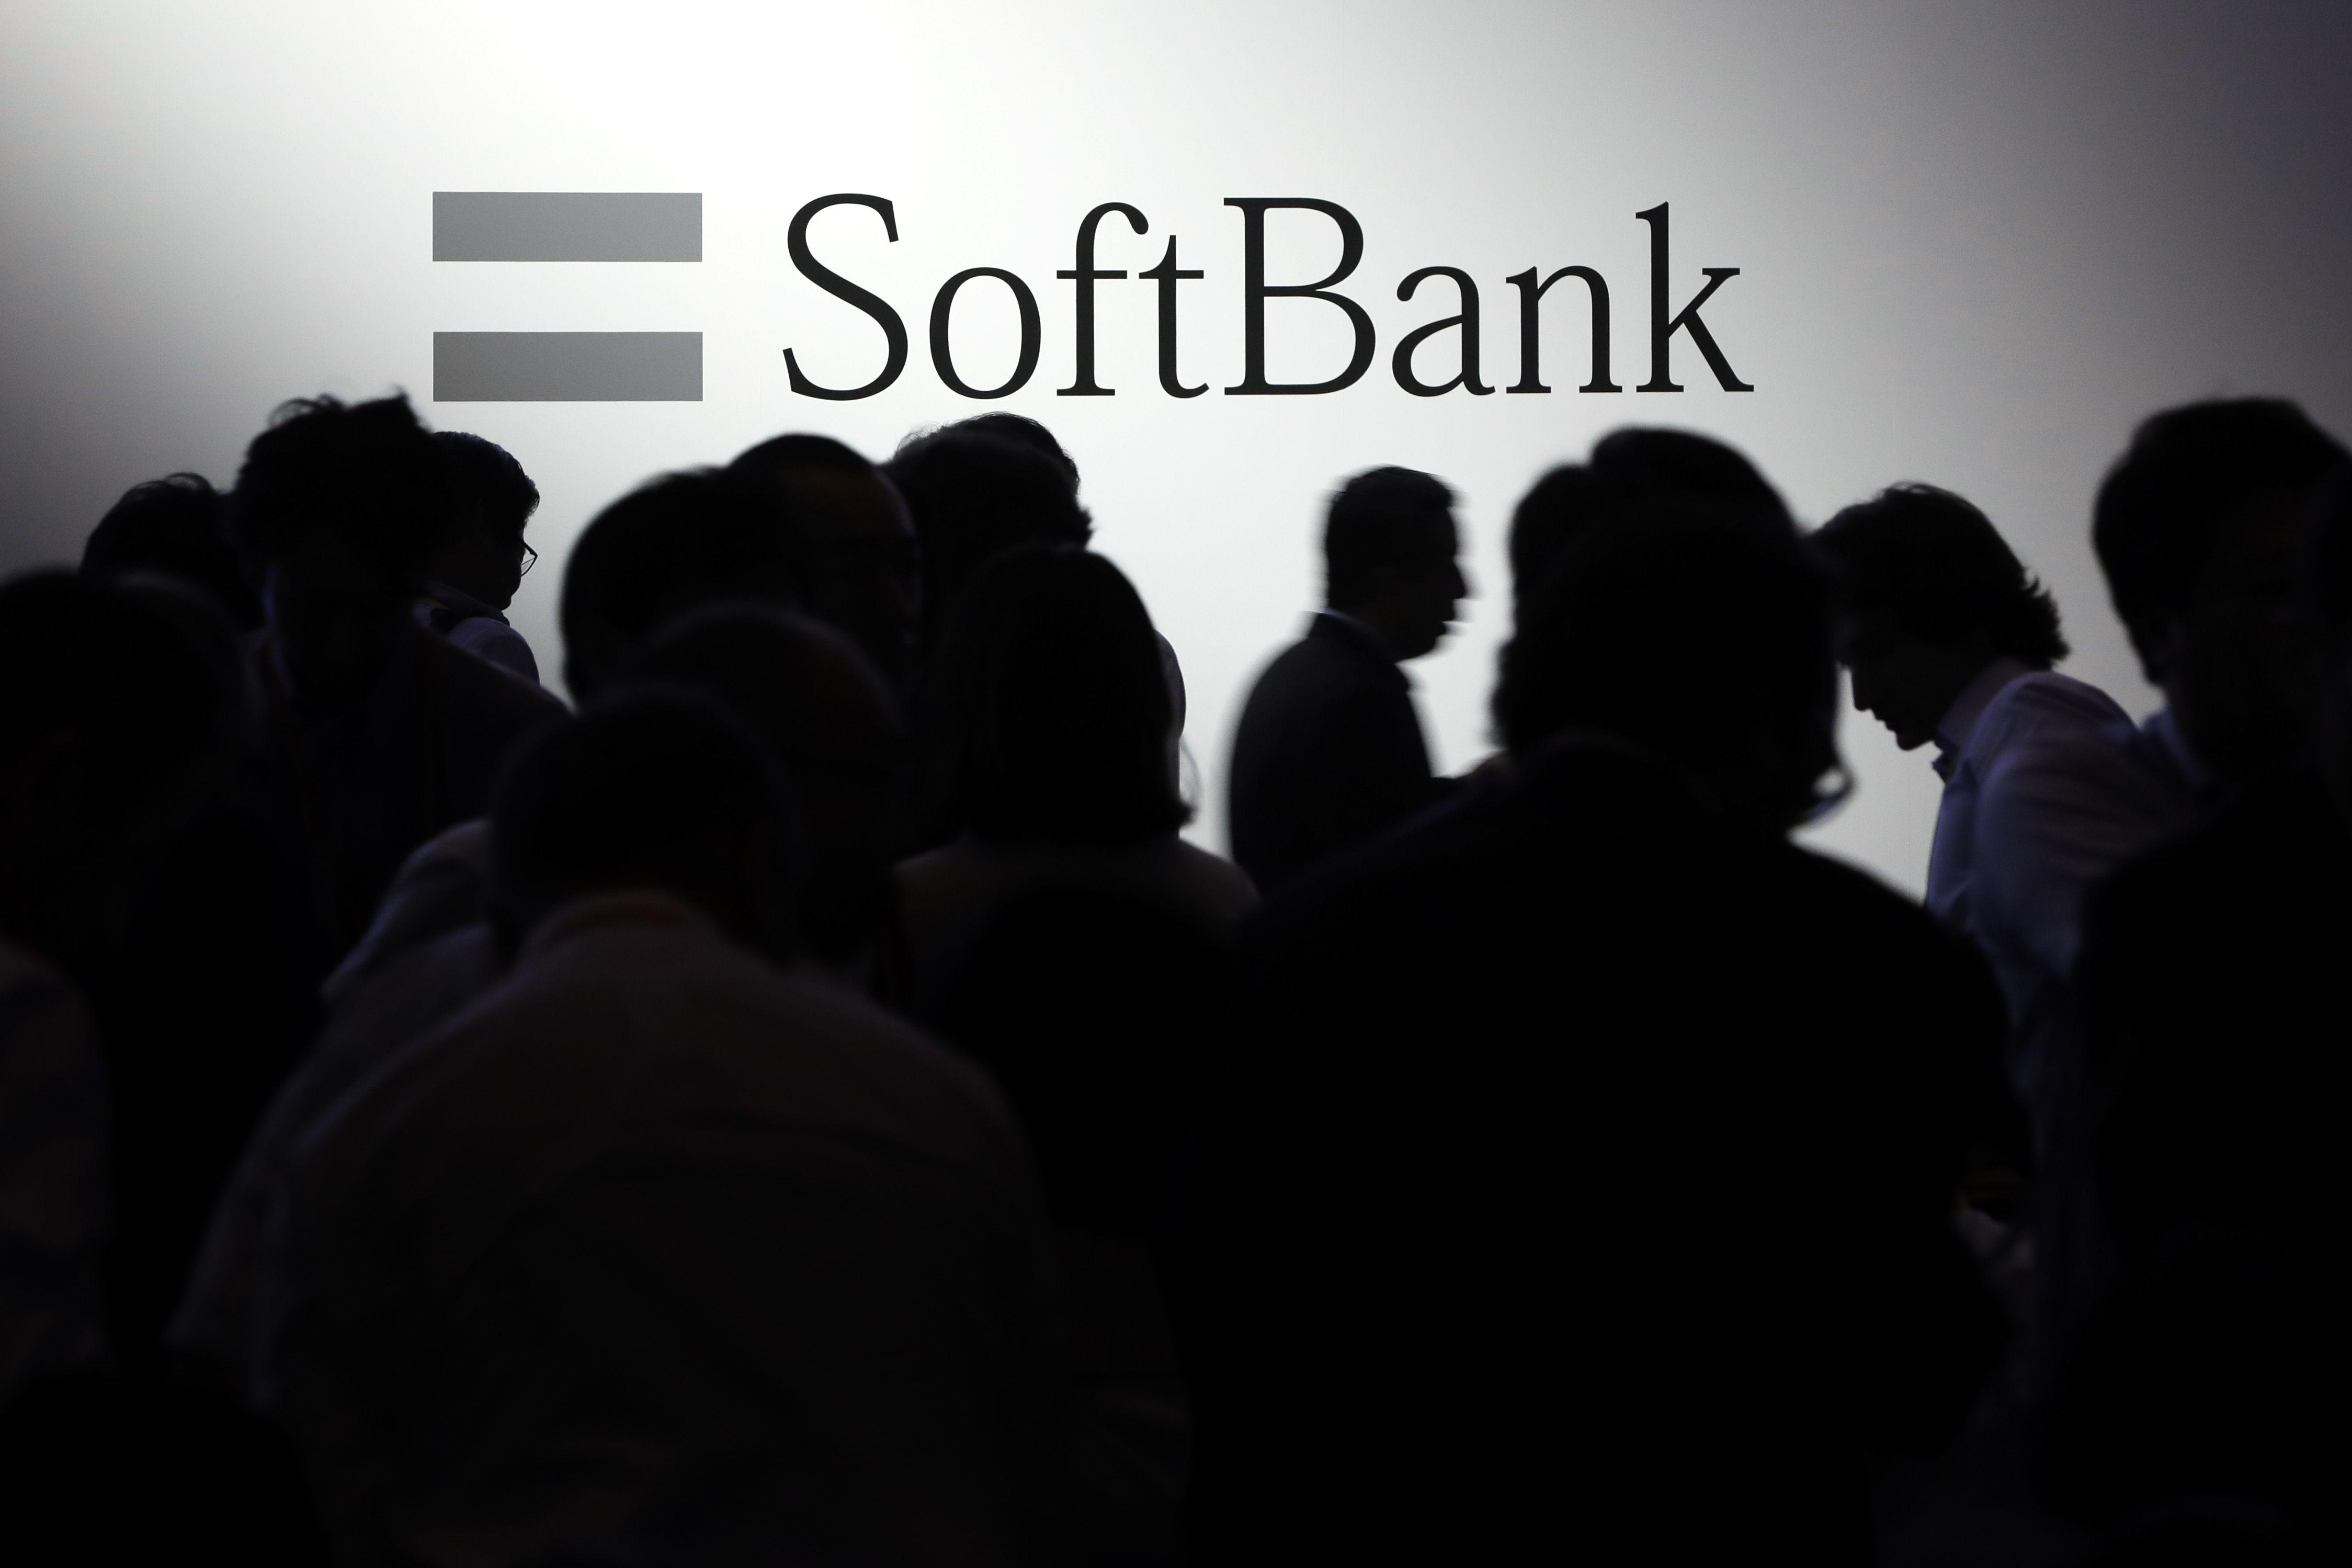 SoftBank Climbs on Plan to Borrow $4.5 Billion Via Telecom Stock